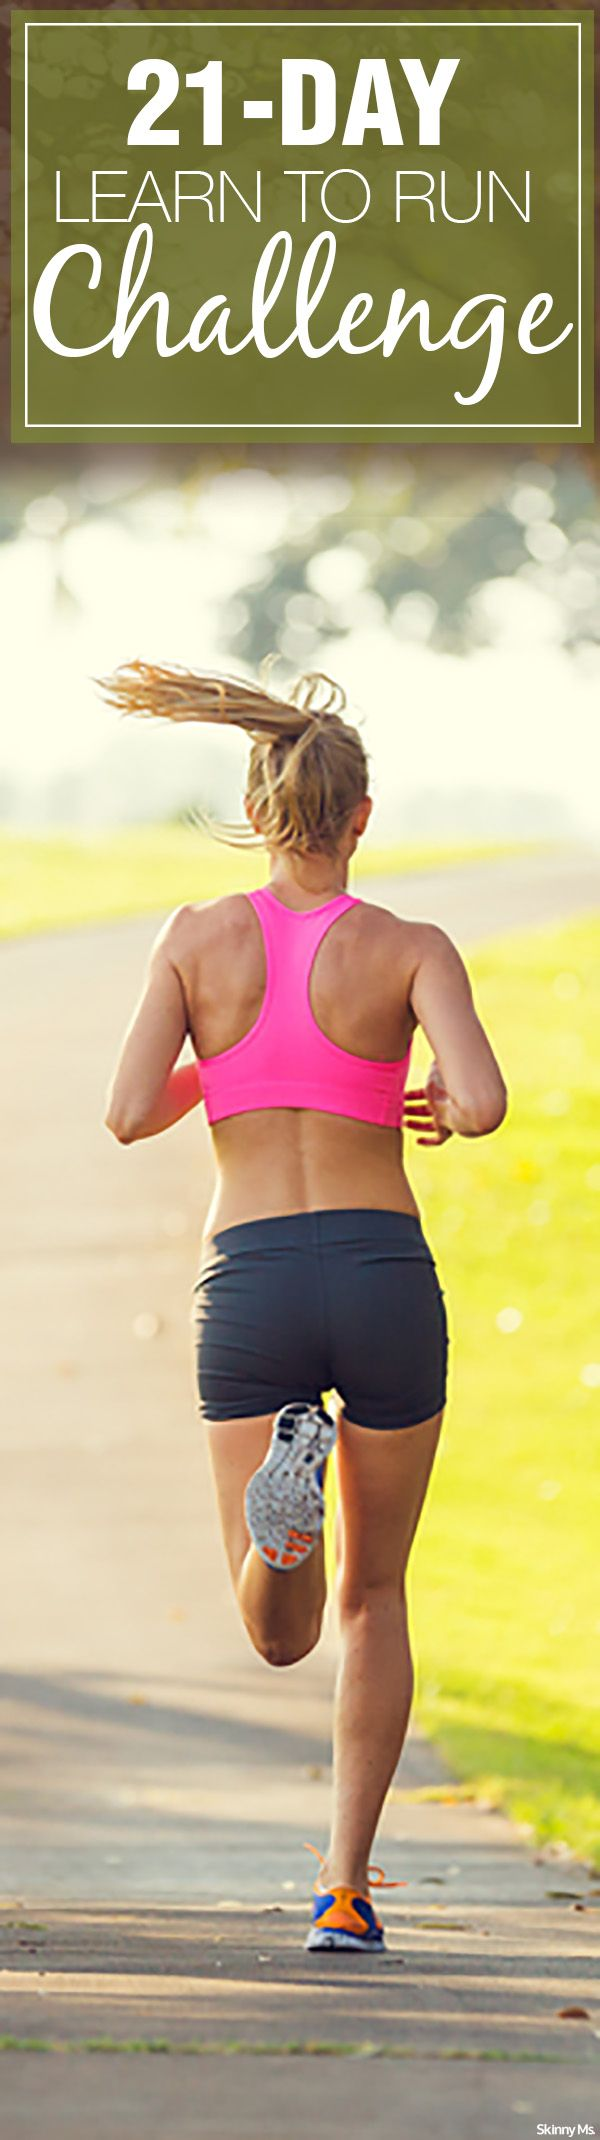 Good for Beginners: 21-Day Learn to Run Challenge #runningchallenge #running #runtips